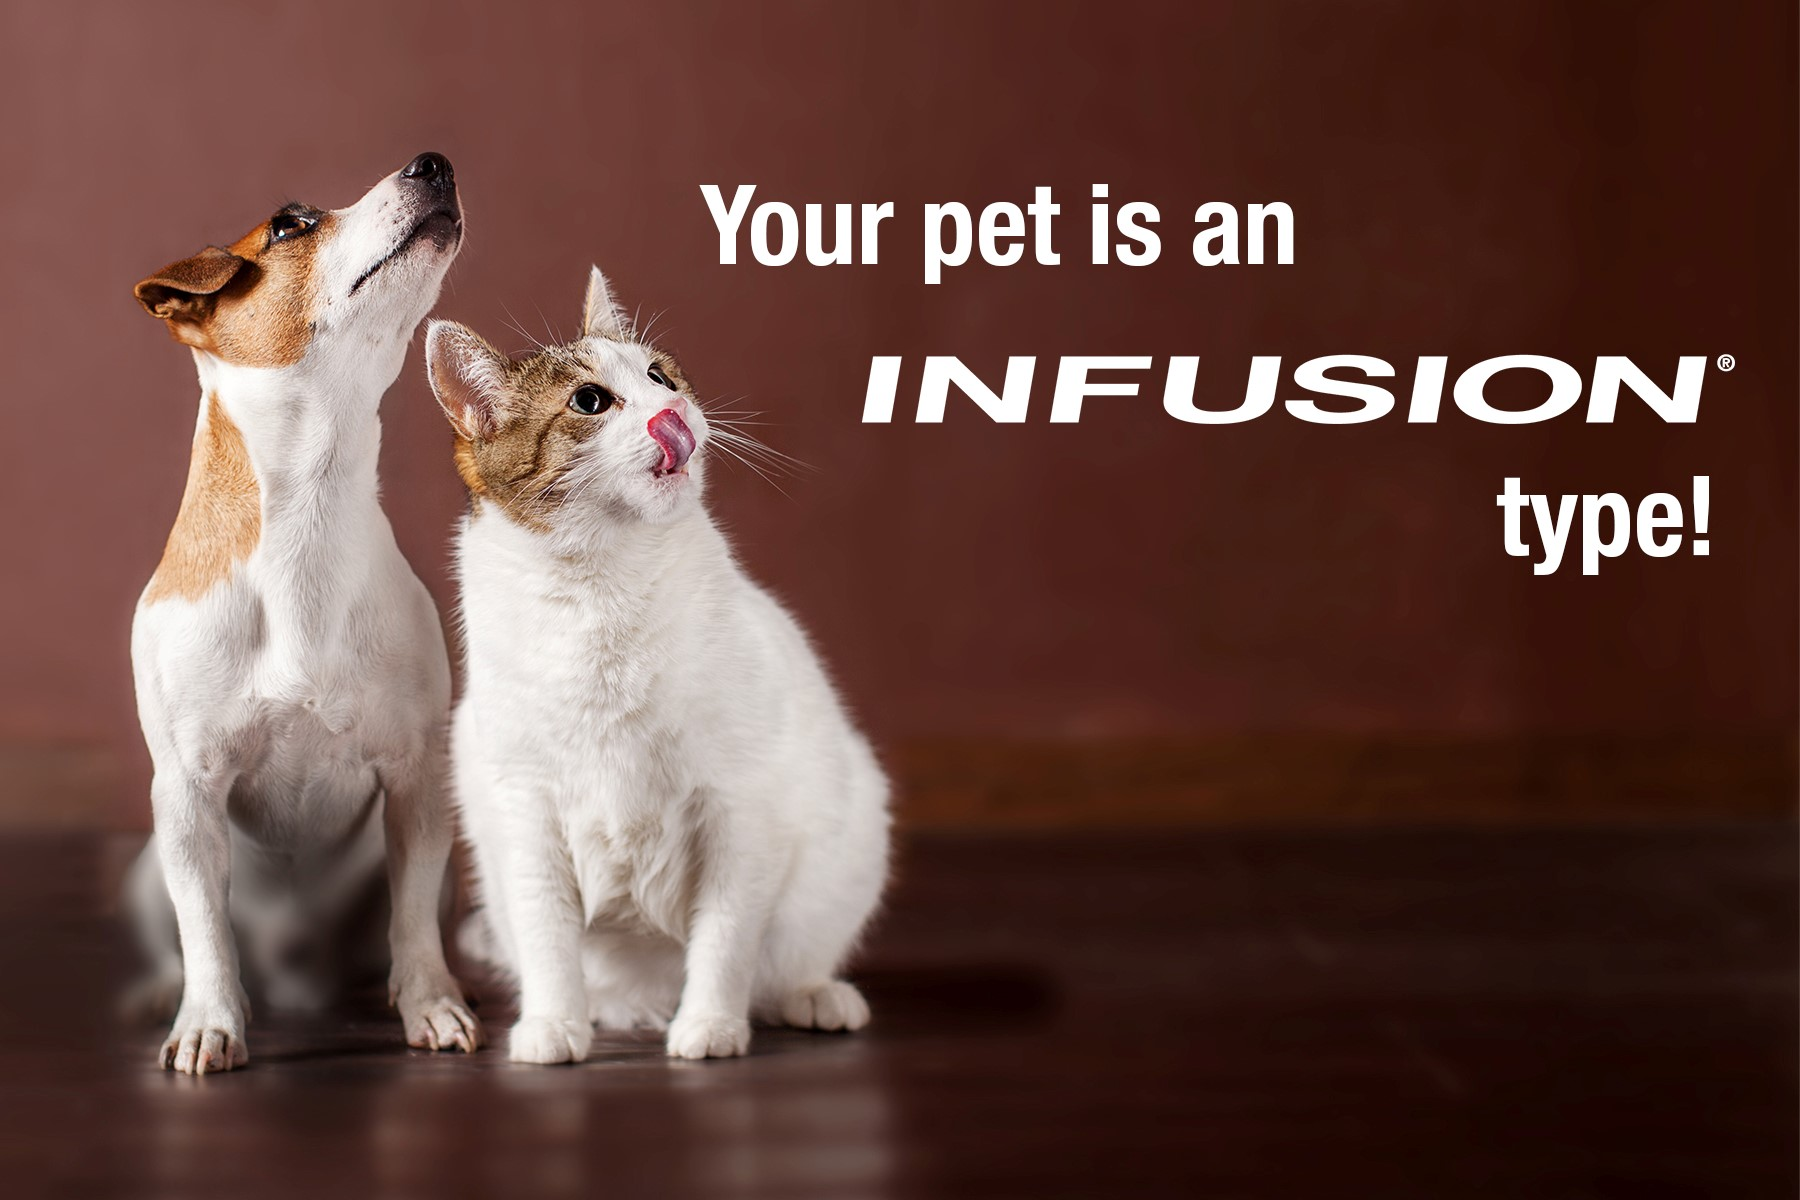 Your pet is an Infusion pet